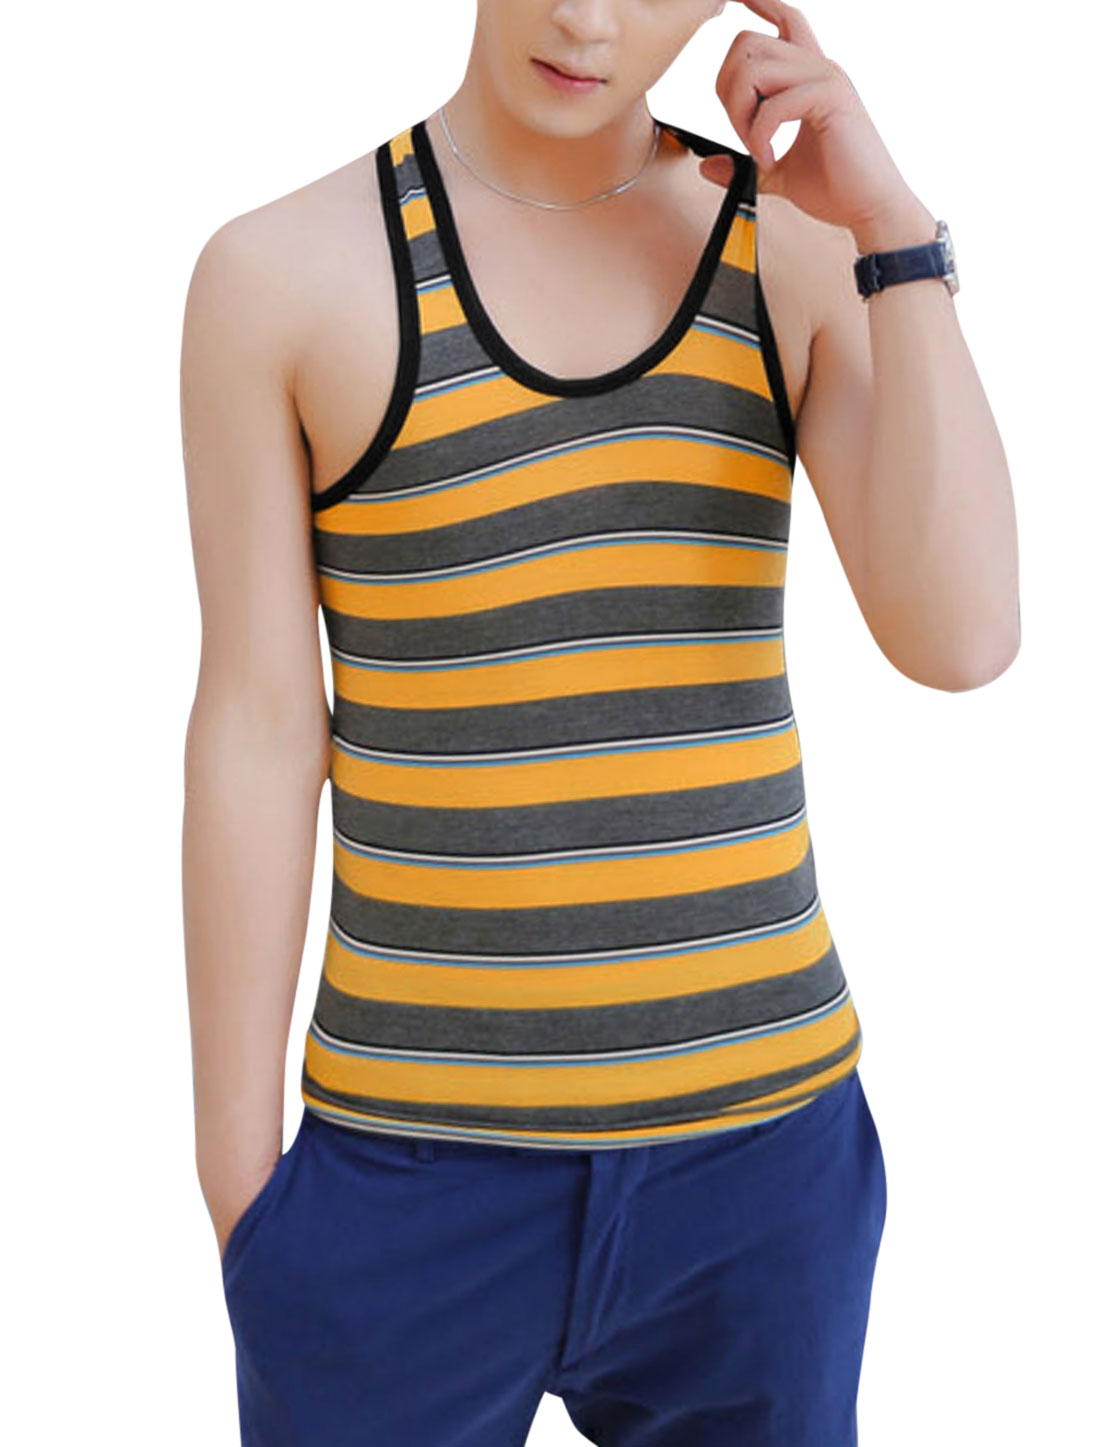 Men Piped Detail Striped Slipover Chic Tank Top Yellow Dark Gray S